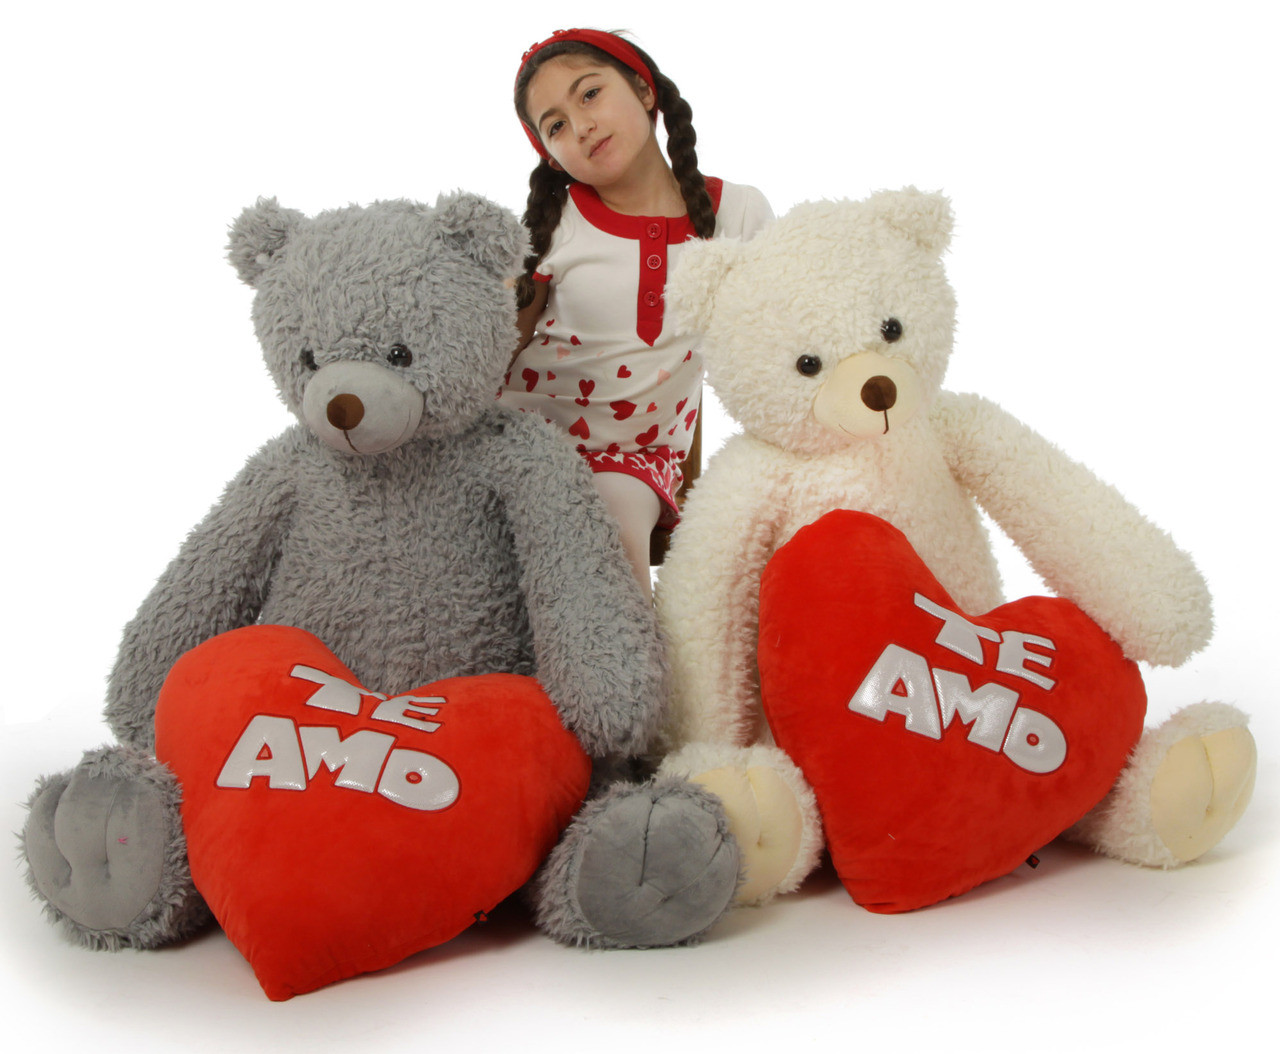 Te Amo! Huge 42in Valentine's Day Teddy Bears from our Woolly Tubs Family: Sugar (silver) Ginger (ginger-white)